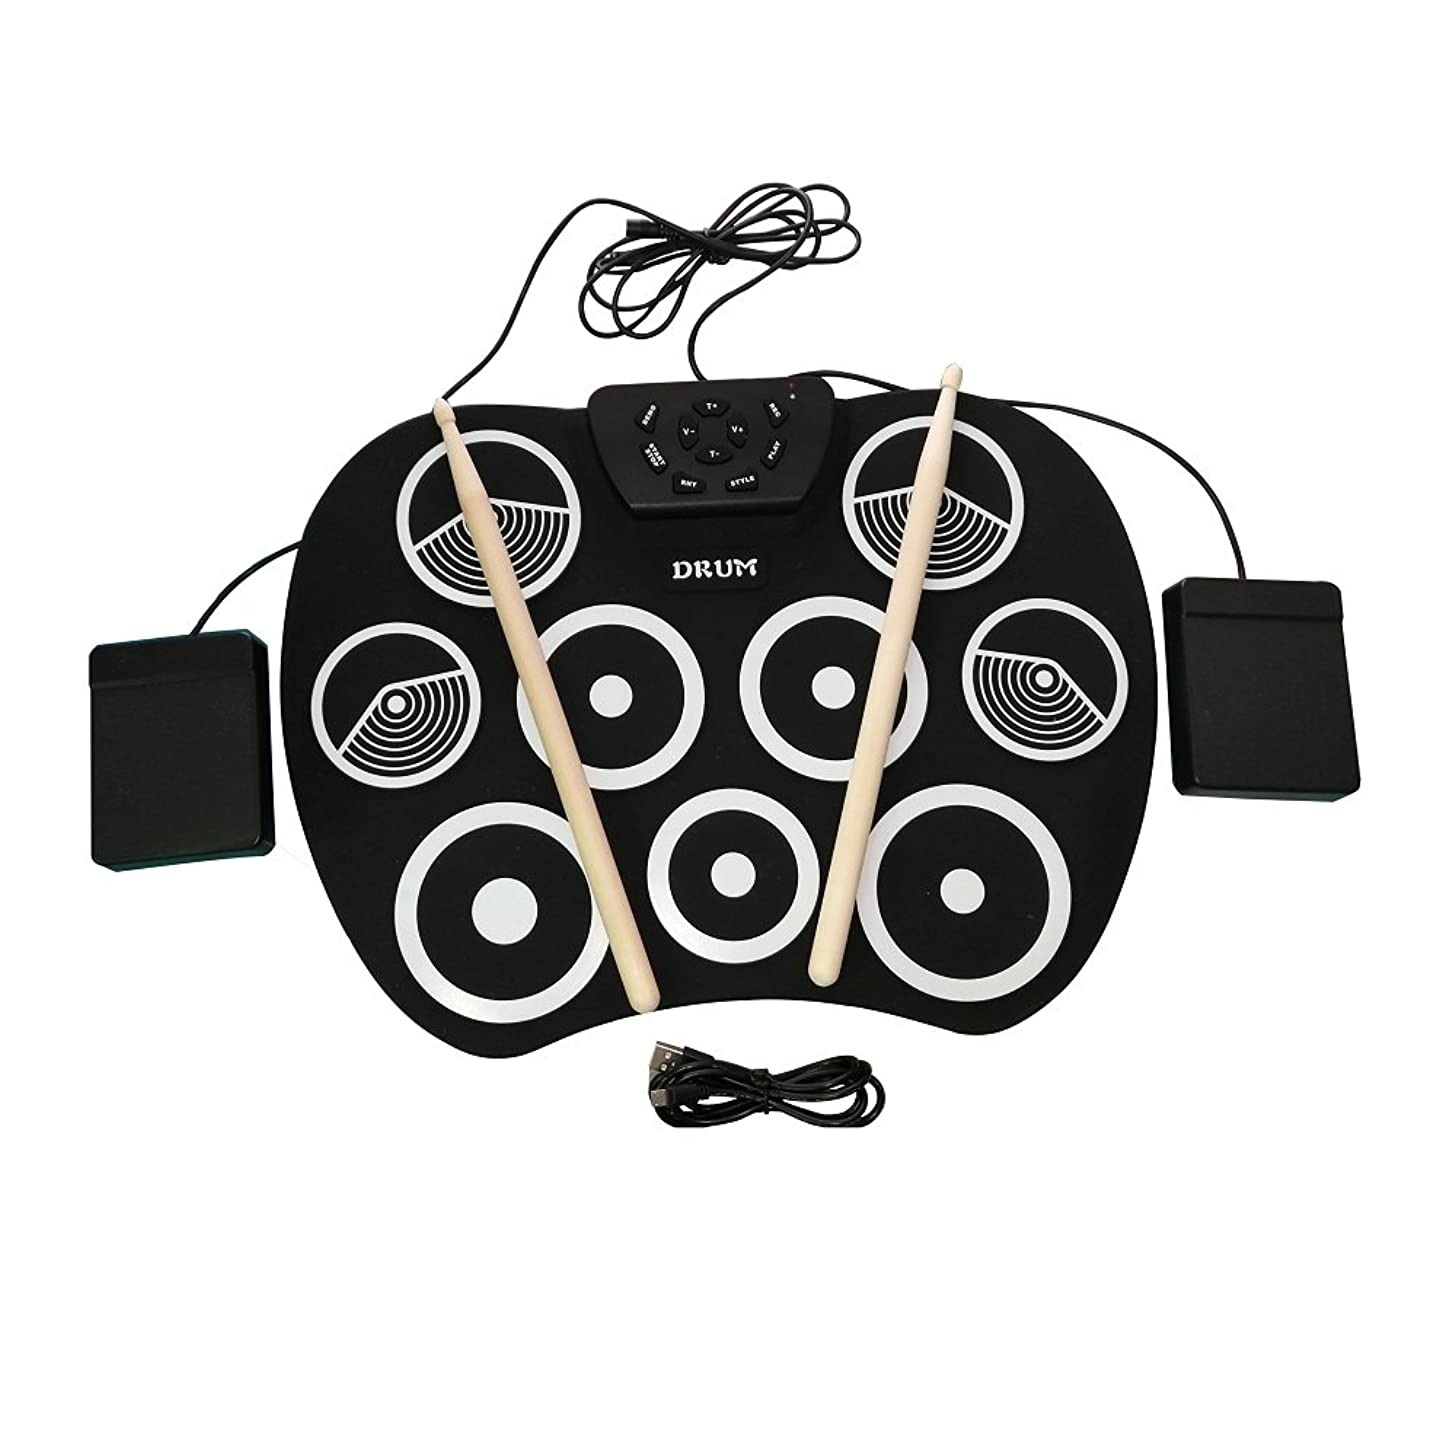 Portable Electronic Roll Up Drum Set, Youqian USB Digital 9 Pad Foldable Practise Electronic Drum Set Musical Instrument for Kids Beginners Children (Headphone/Speaker Required for Use)